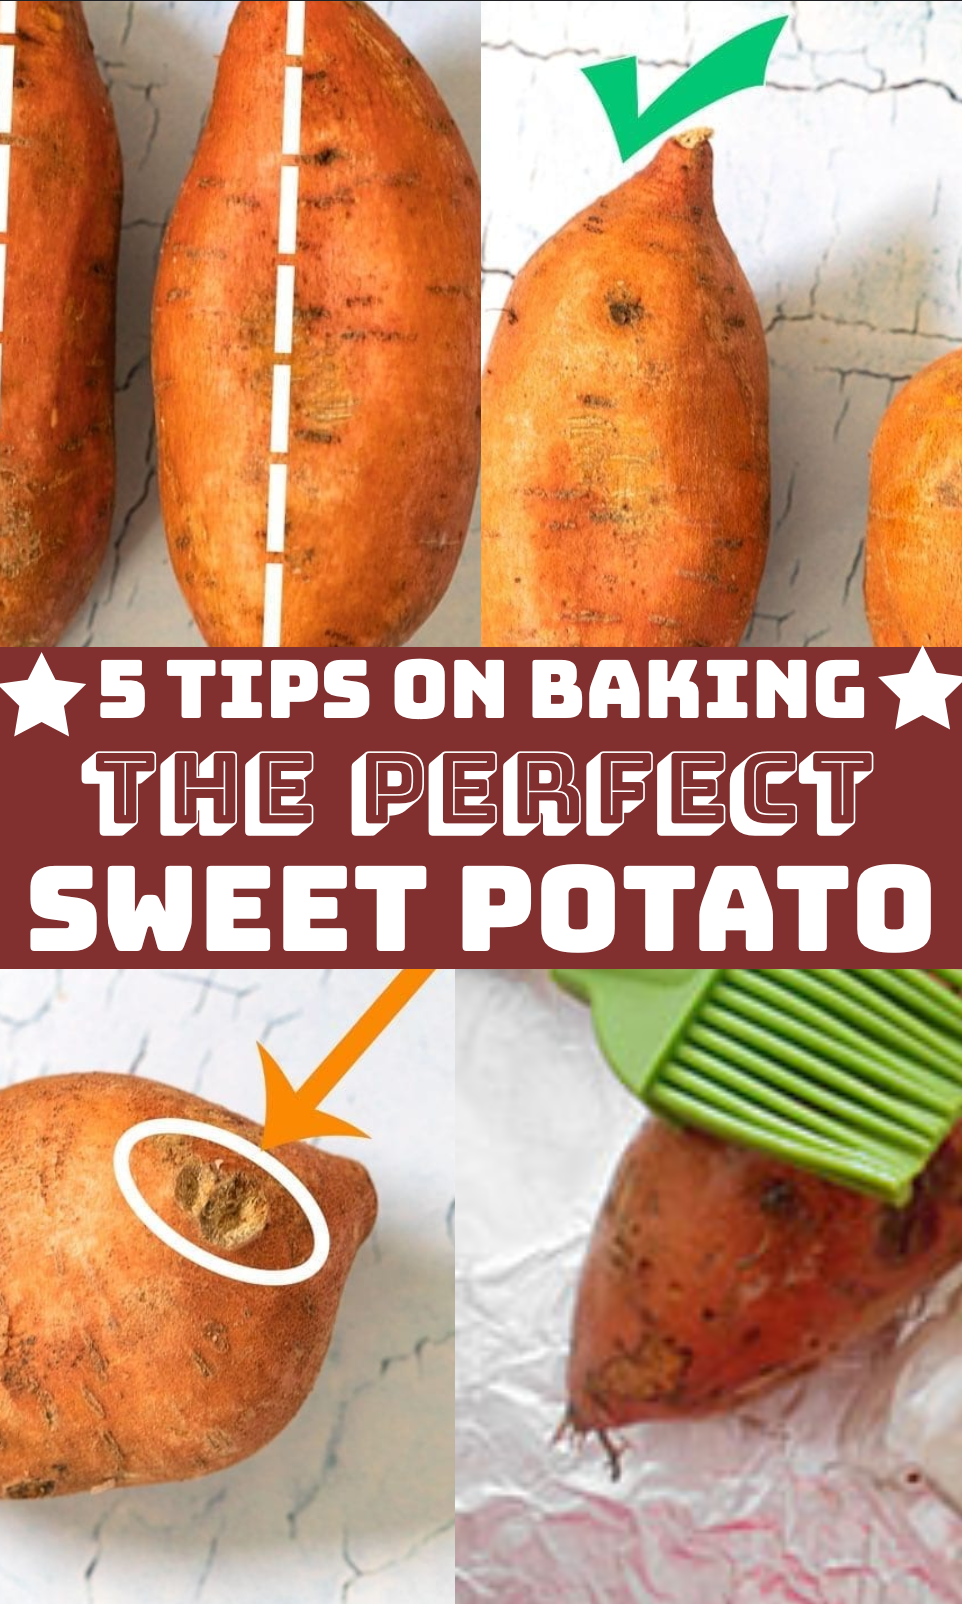 Collage of 4 images that show tips for baking a sweet potato